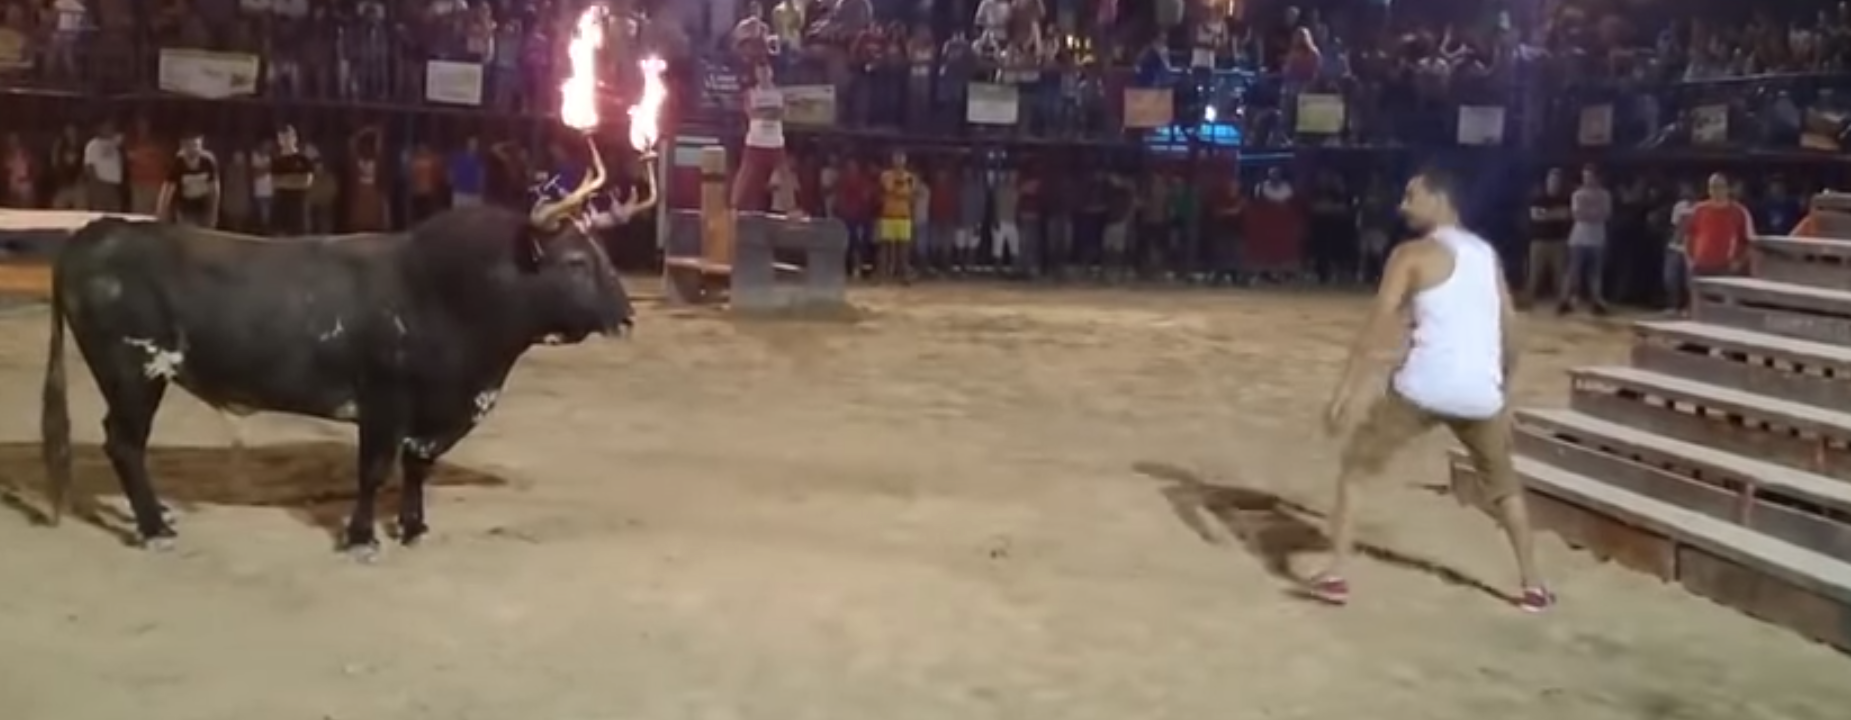 Man vs. Flaming Bull